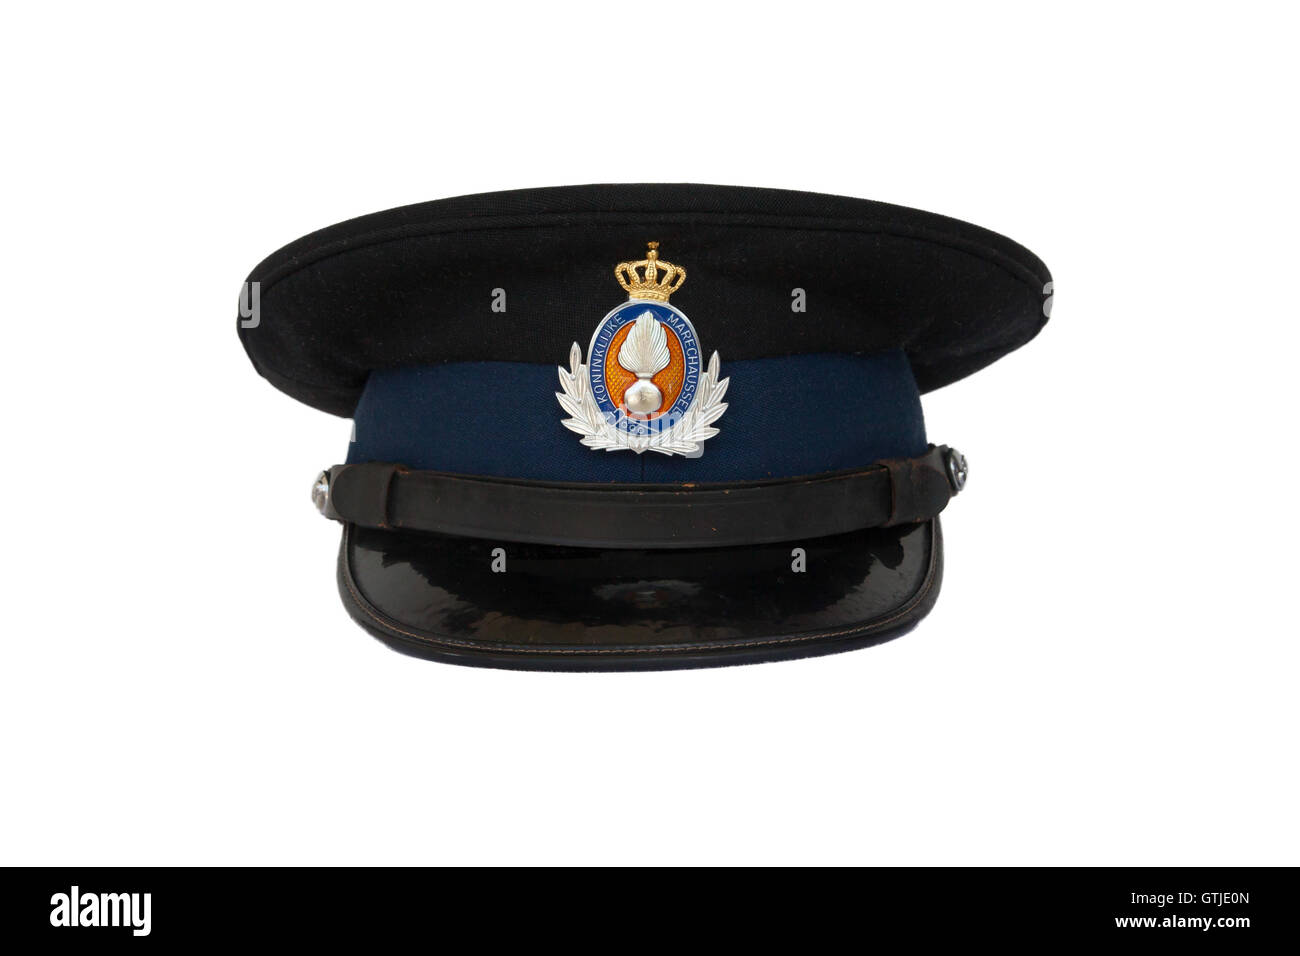 Clothing of the dutch military police - Stock Image